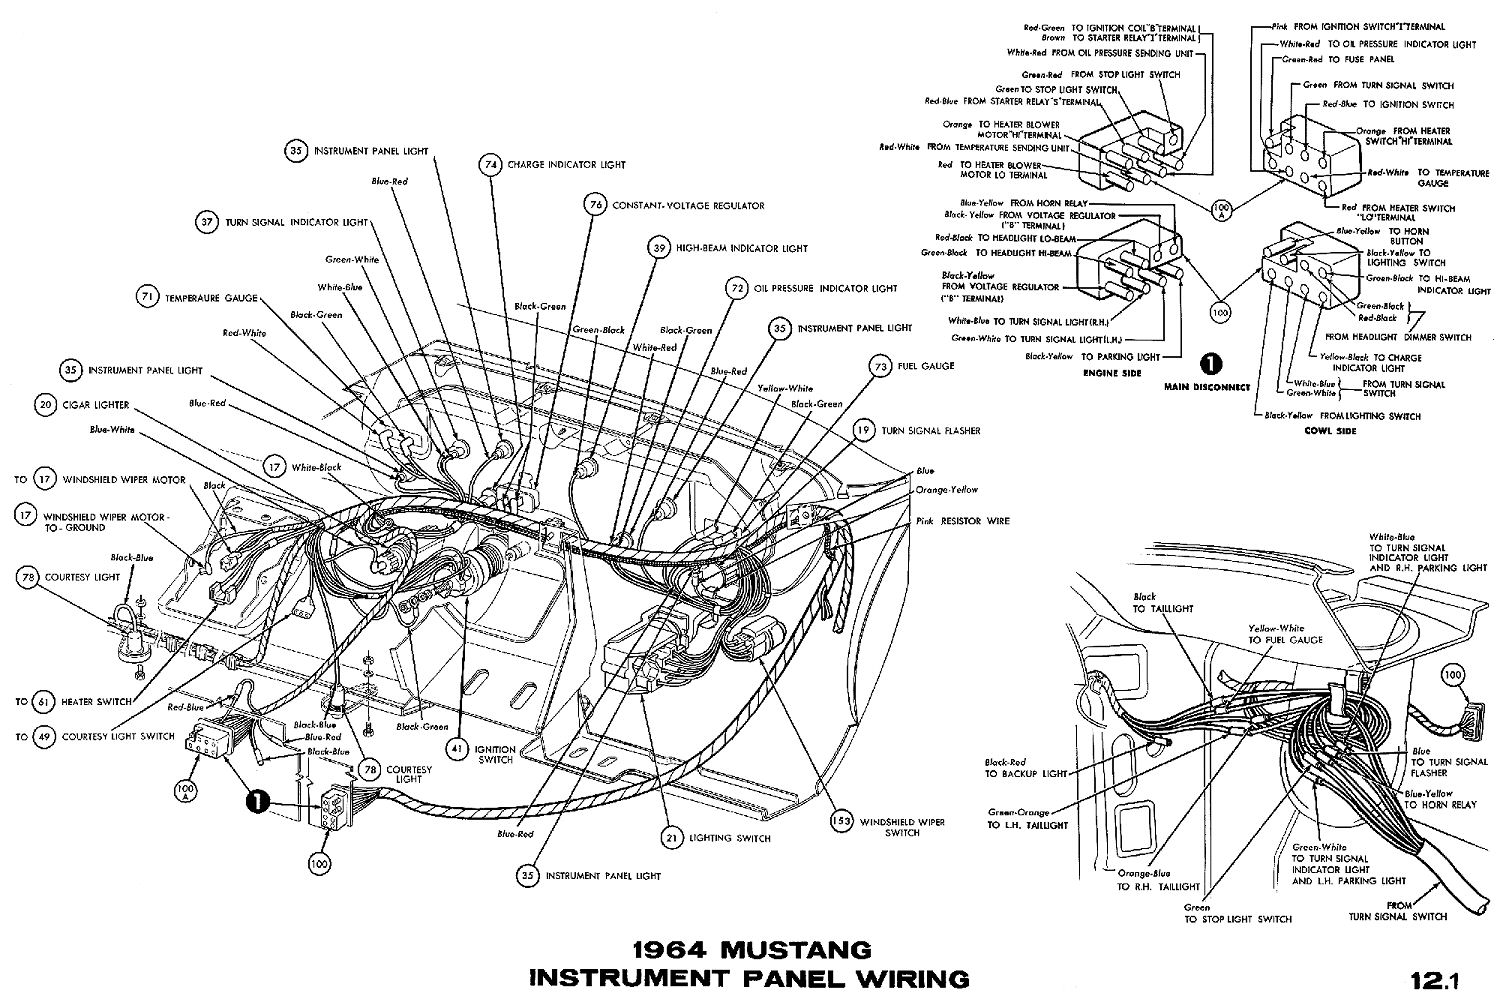 1964b 1964 mustang wiring diagrams average joe restoration Ford 4600 Wiring Schematic at n-0.co